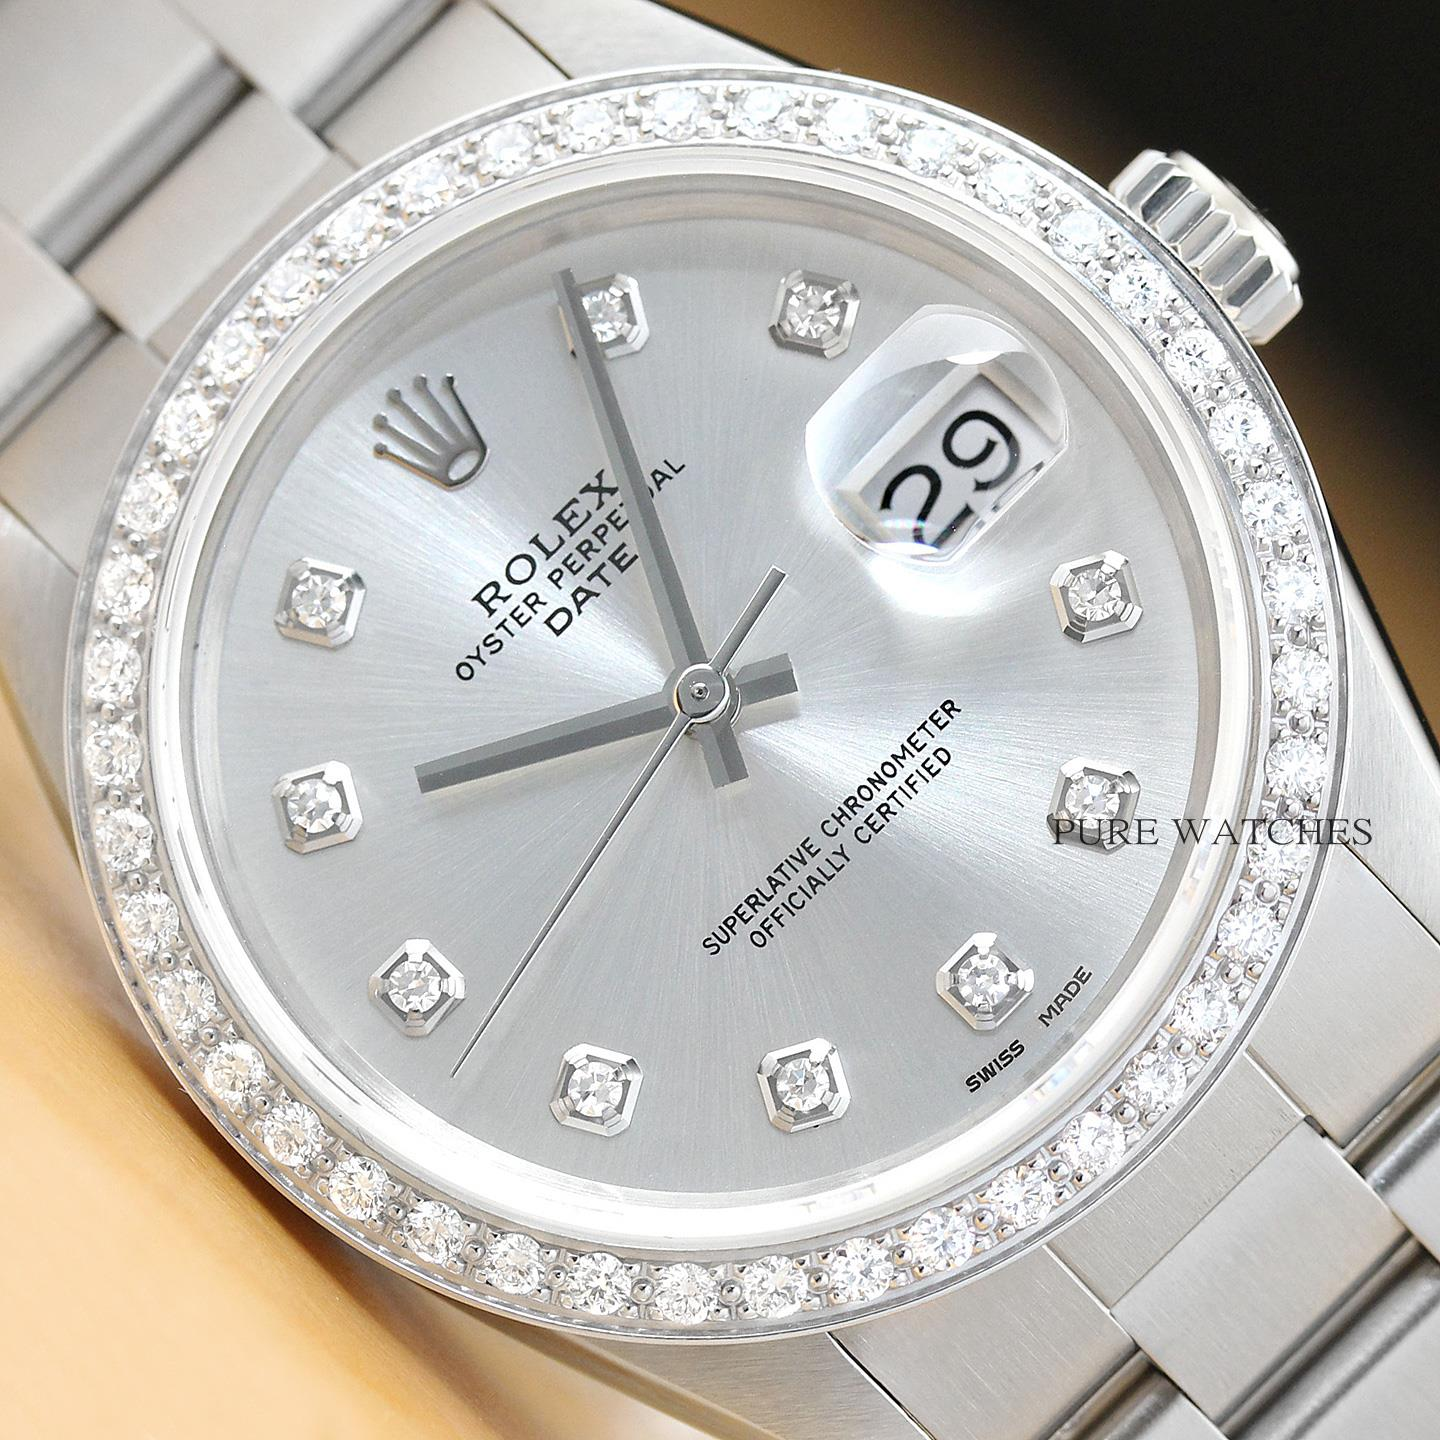 c31d490bd3e7 Details about ROLEX MENS 34MM OYSTER PERPETUAL DATE 18K WHITE GOLD DIAMOND  STEEL WATCH